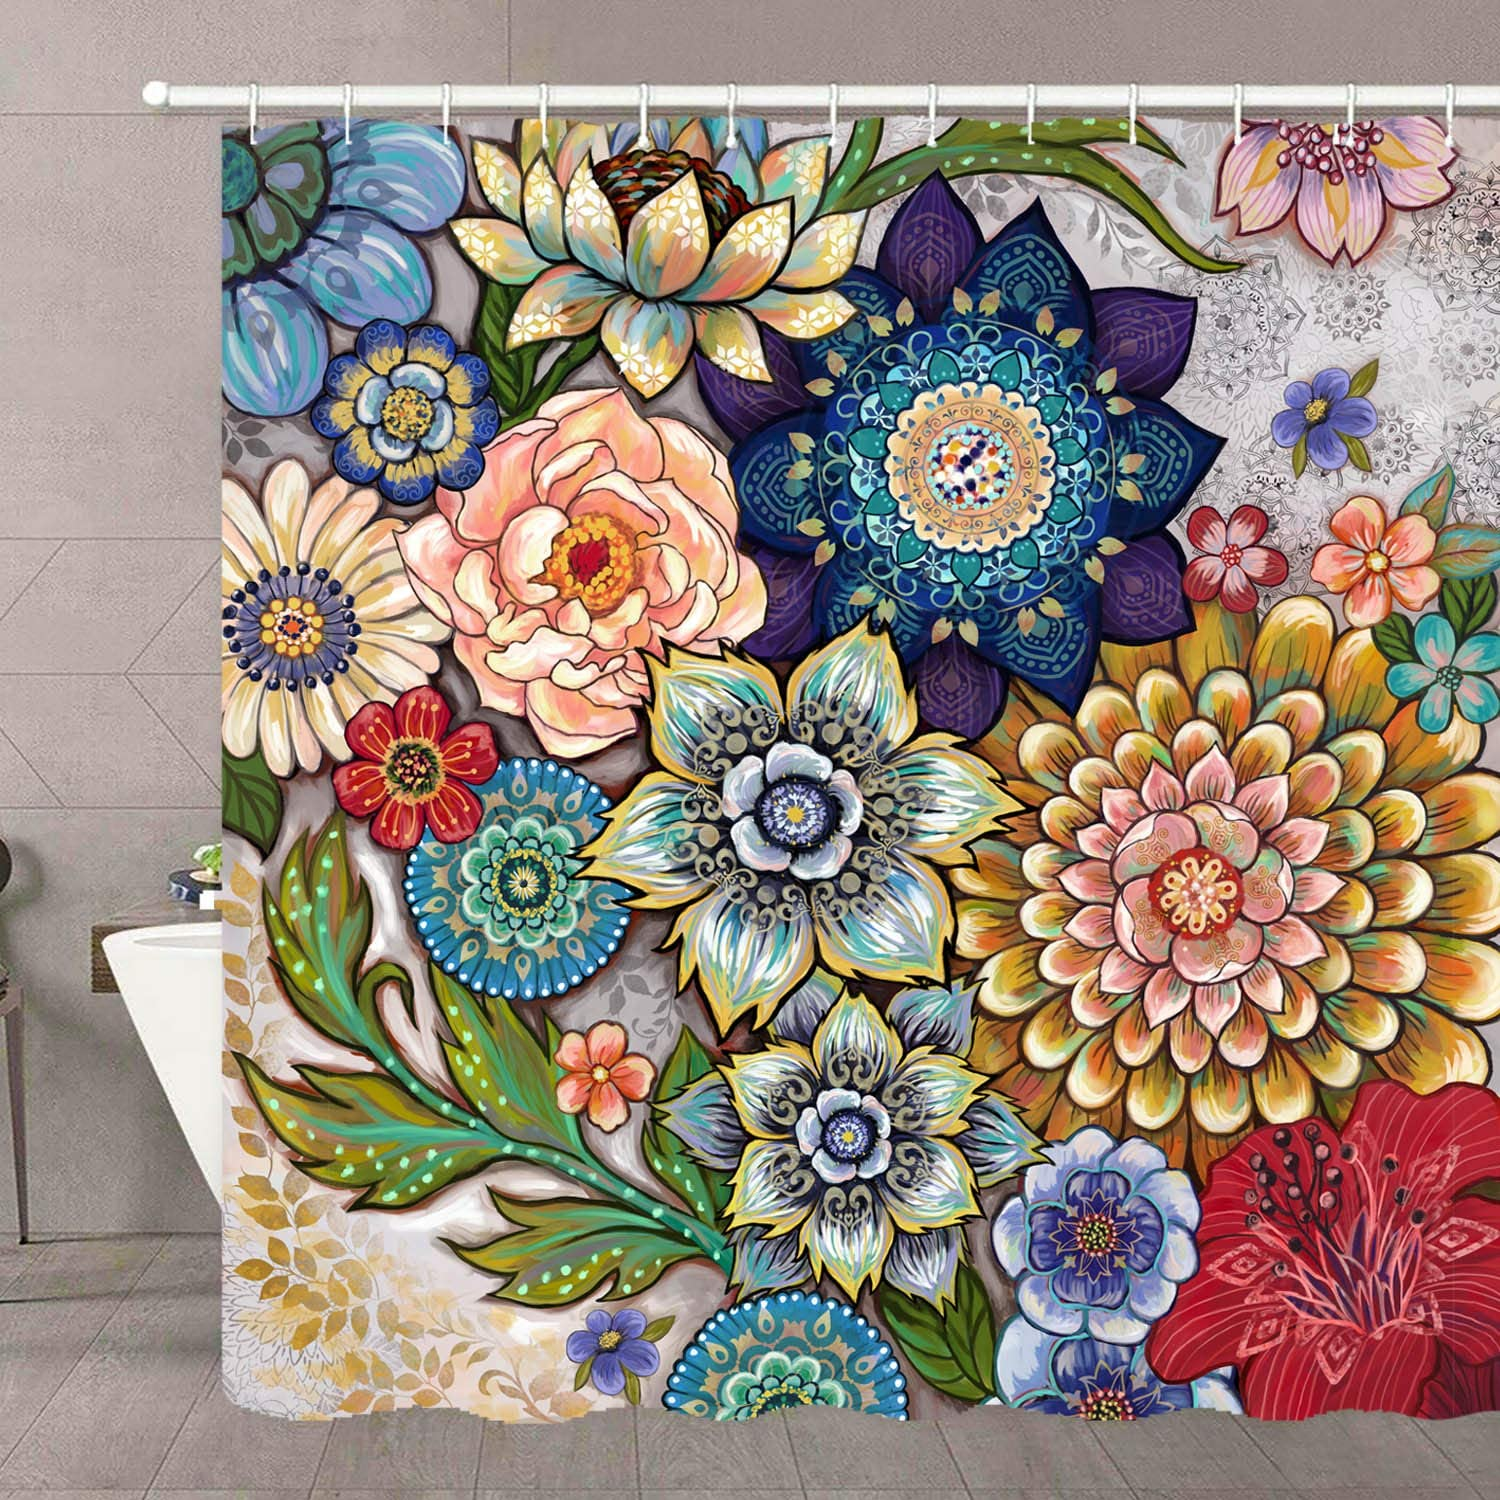 Neasow Boho Floral Shower Curtains for Bathroom, Bright Fabric Blossom Shower Curtain